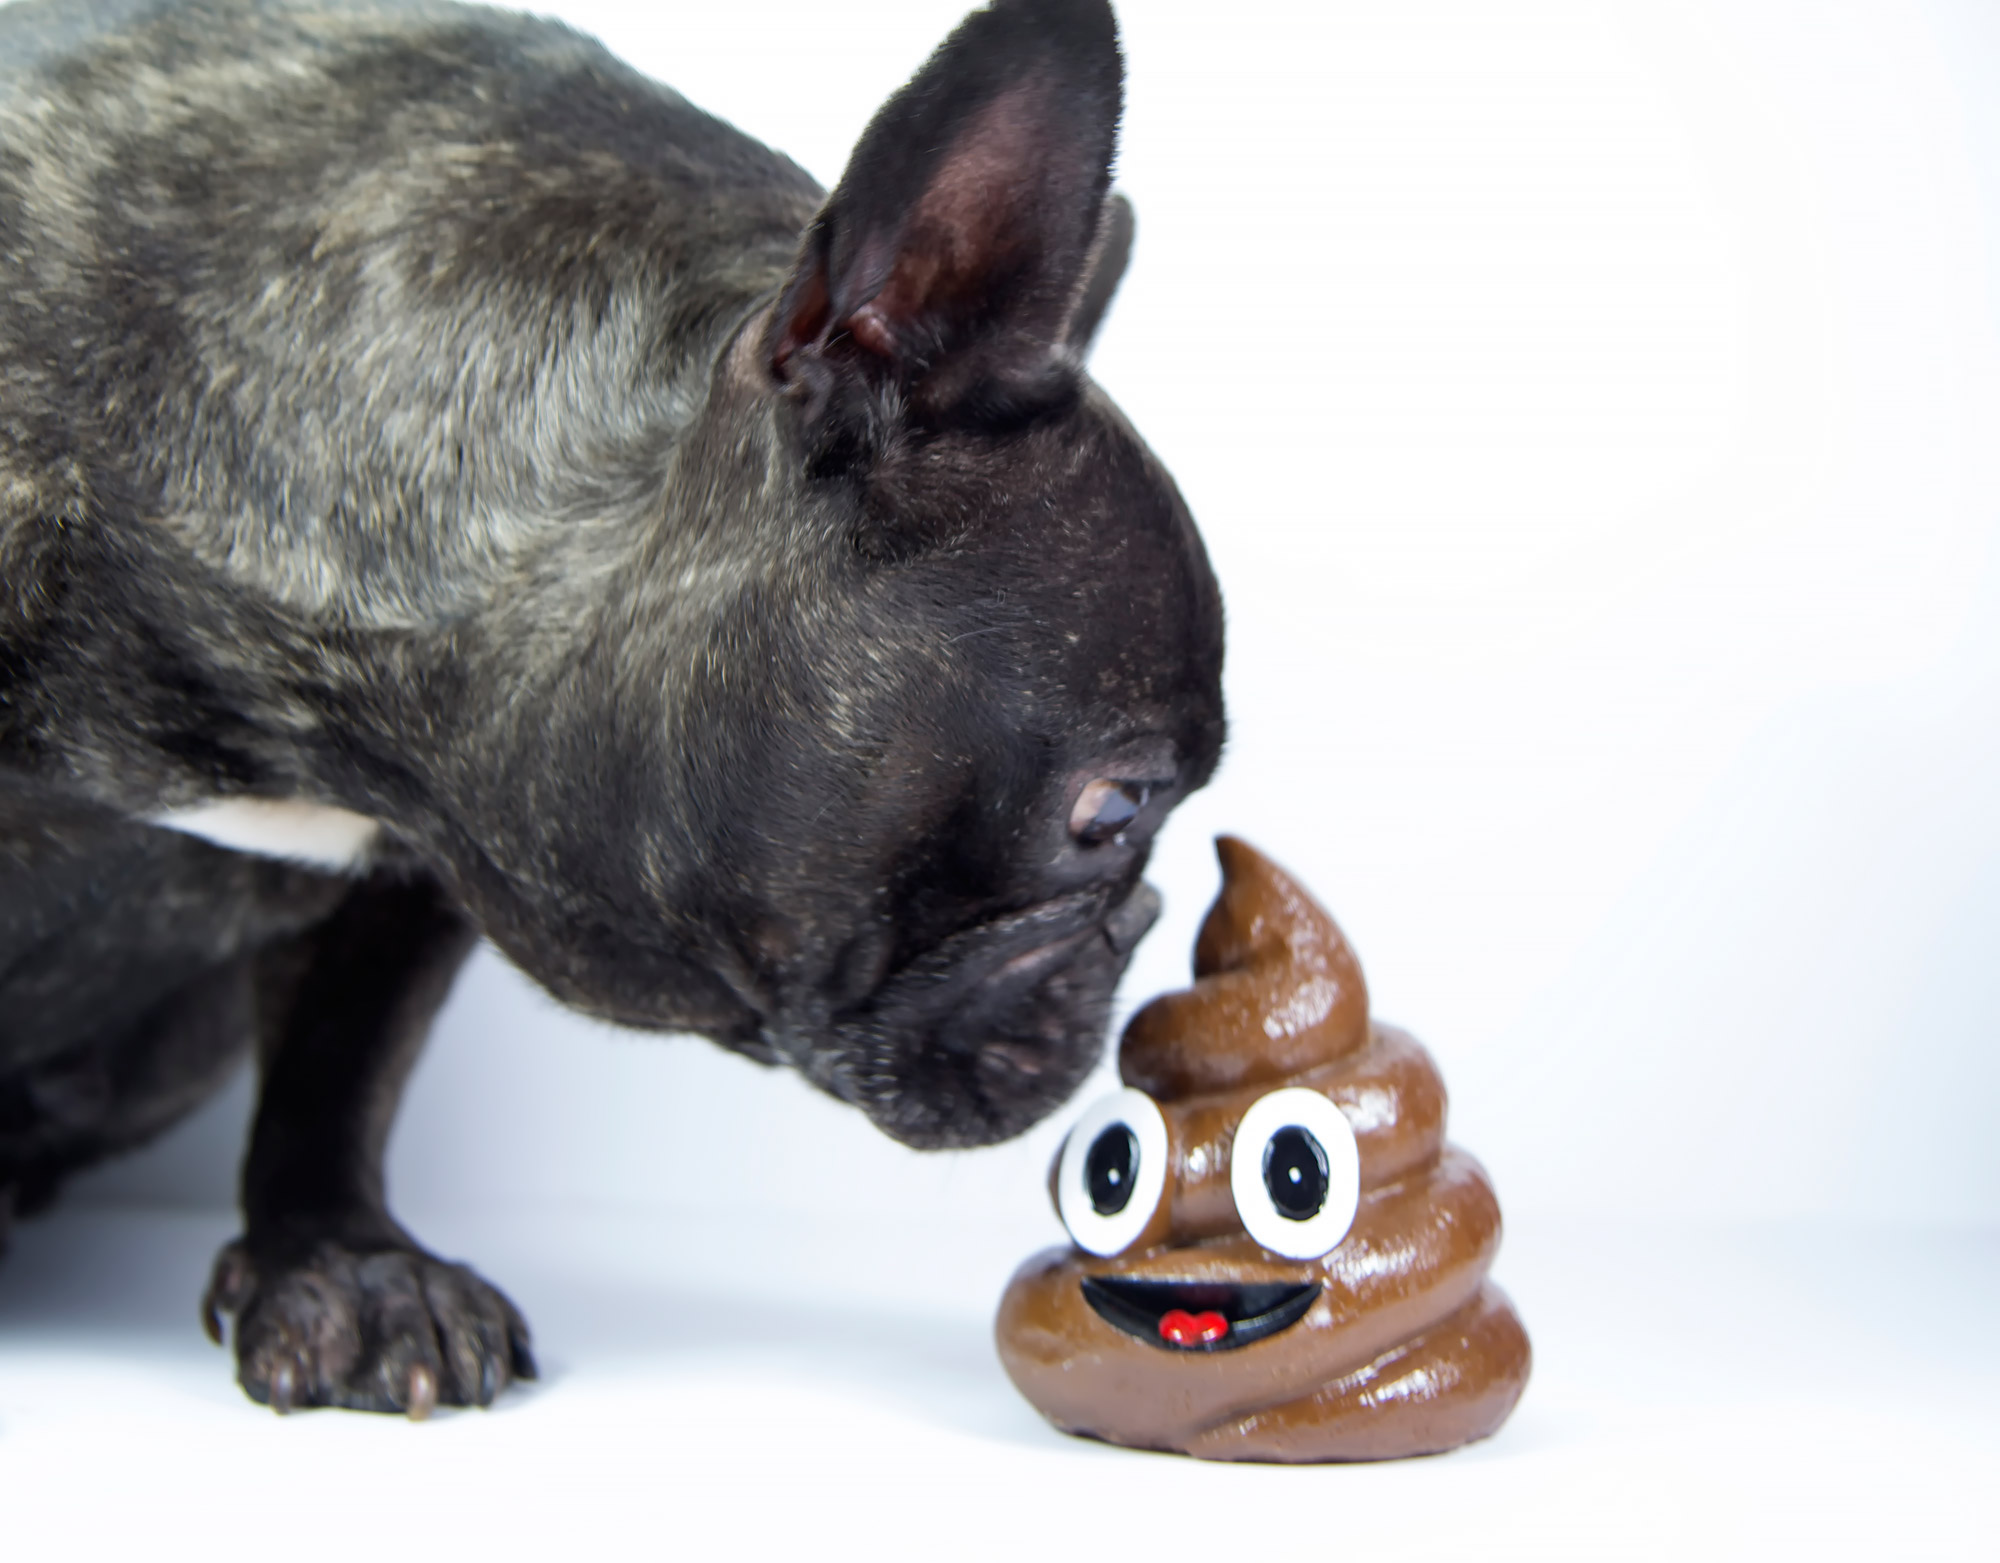 Why Dogs Eat Poop According to Science | PEOPLE.com